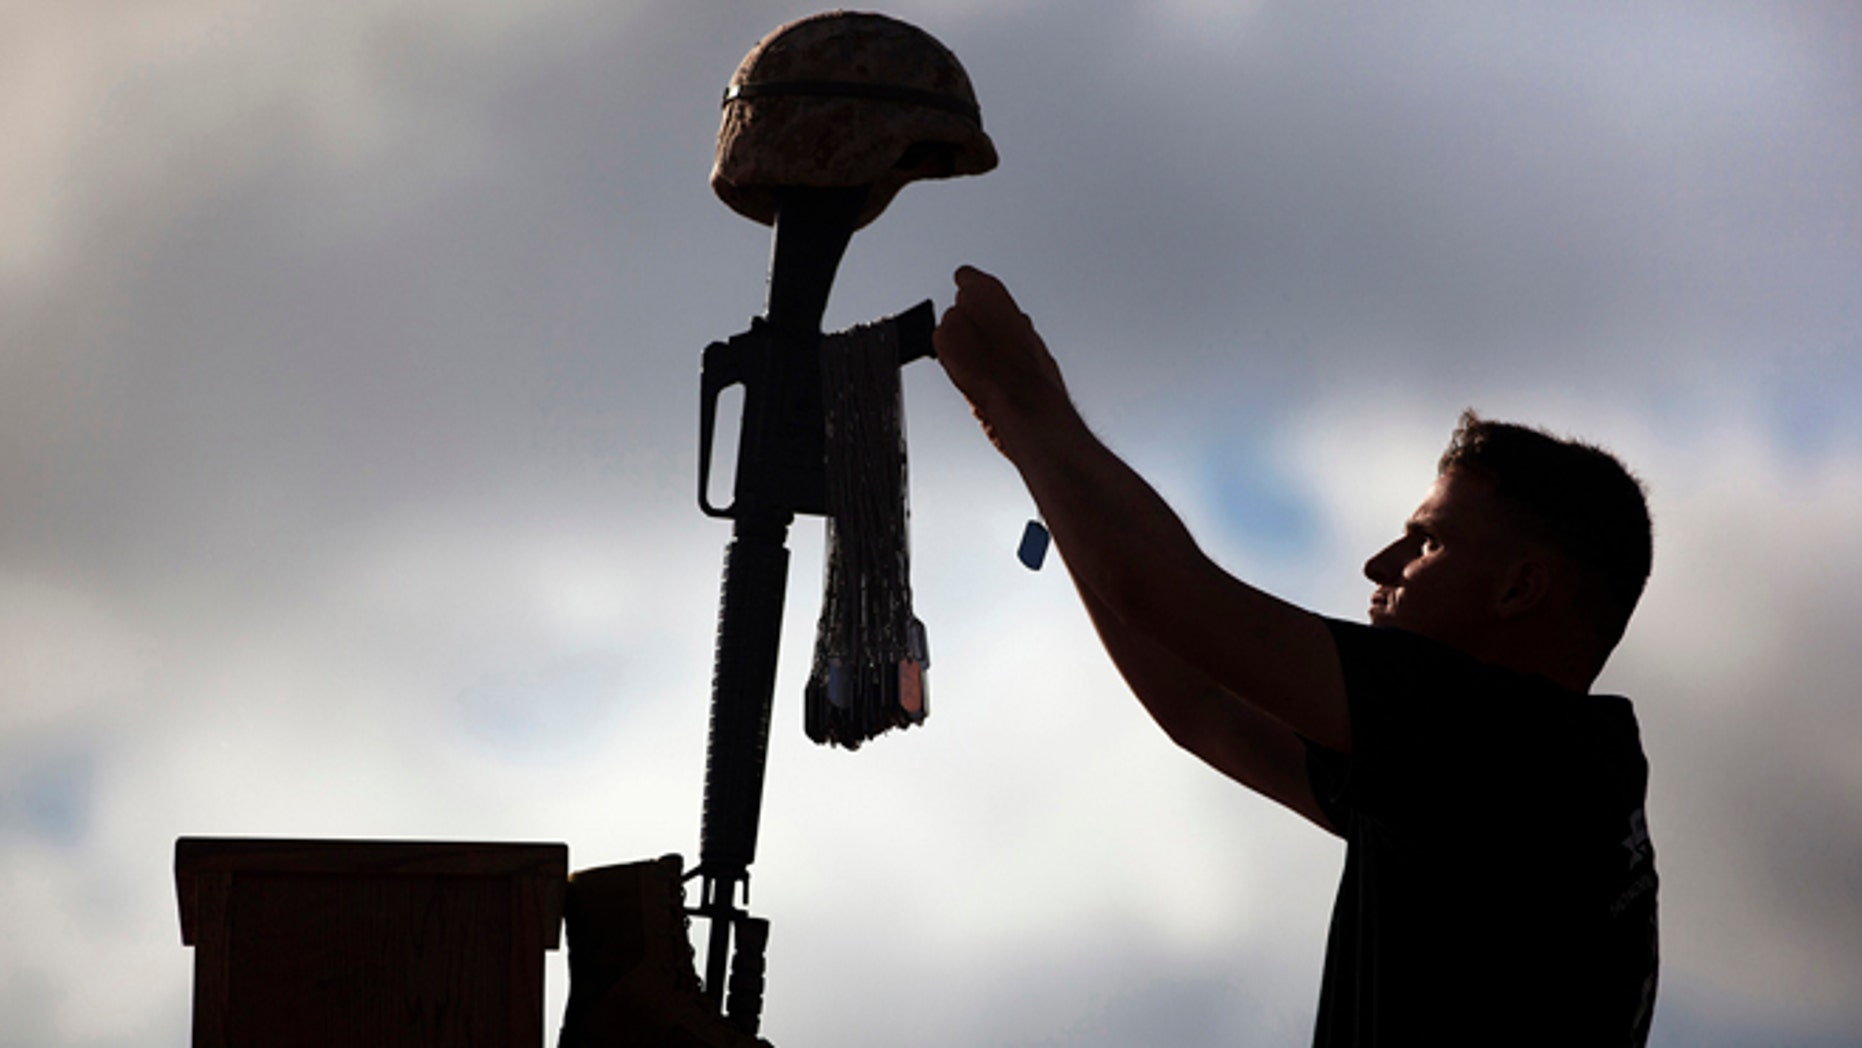 A US Marine places a dog tag of a fallen Marine atop a battlefield cross at a memorial in Hawaii in this 2012 photo.